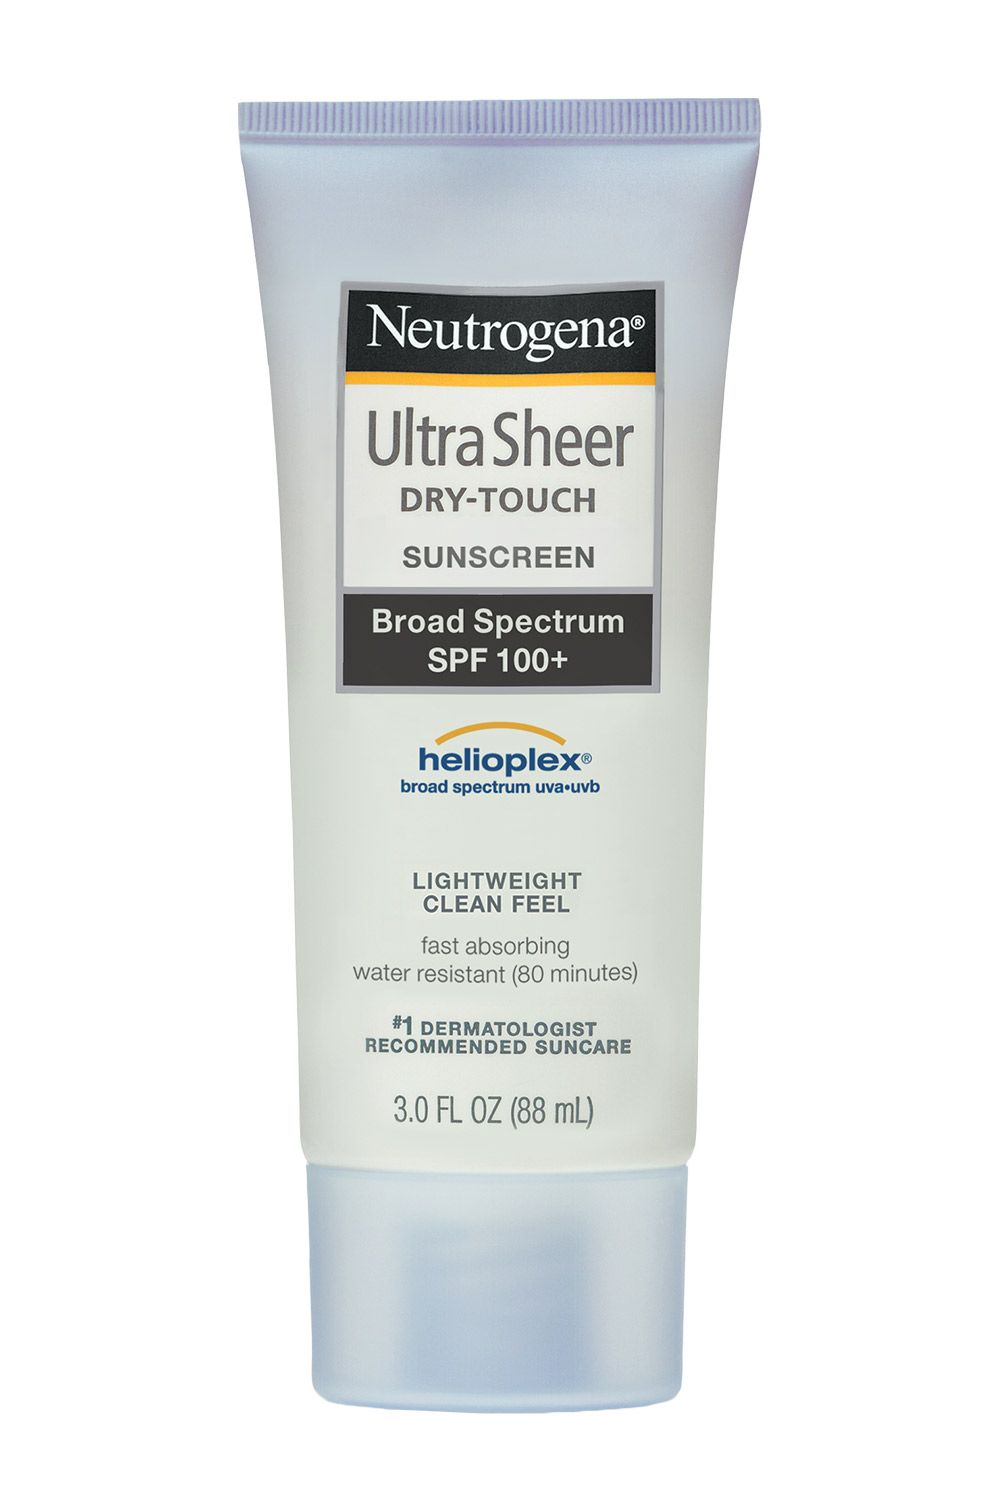 "<p>Water-resistant <strong>Neutrogena Ultra Sheer Dry-Touch Sunscreen Broad Spectrum SPF 100+</strong><strong></strong> is a no-brainer for the beach bag. And the non-shiny, dry finish makes it comfortable to wear. Remember the cardinal rule: Use a shot glass-worth of sunscreen to cover your entire body. <em>$12, <a href=""http://www.neutrogena.com/product/ultra+sheer-+dry-touch+sunscreen+broad+spectrum+spf+100-.do?sortby=ourPicks"" target=""_blank"">neutrogena.com</a></em></p>"